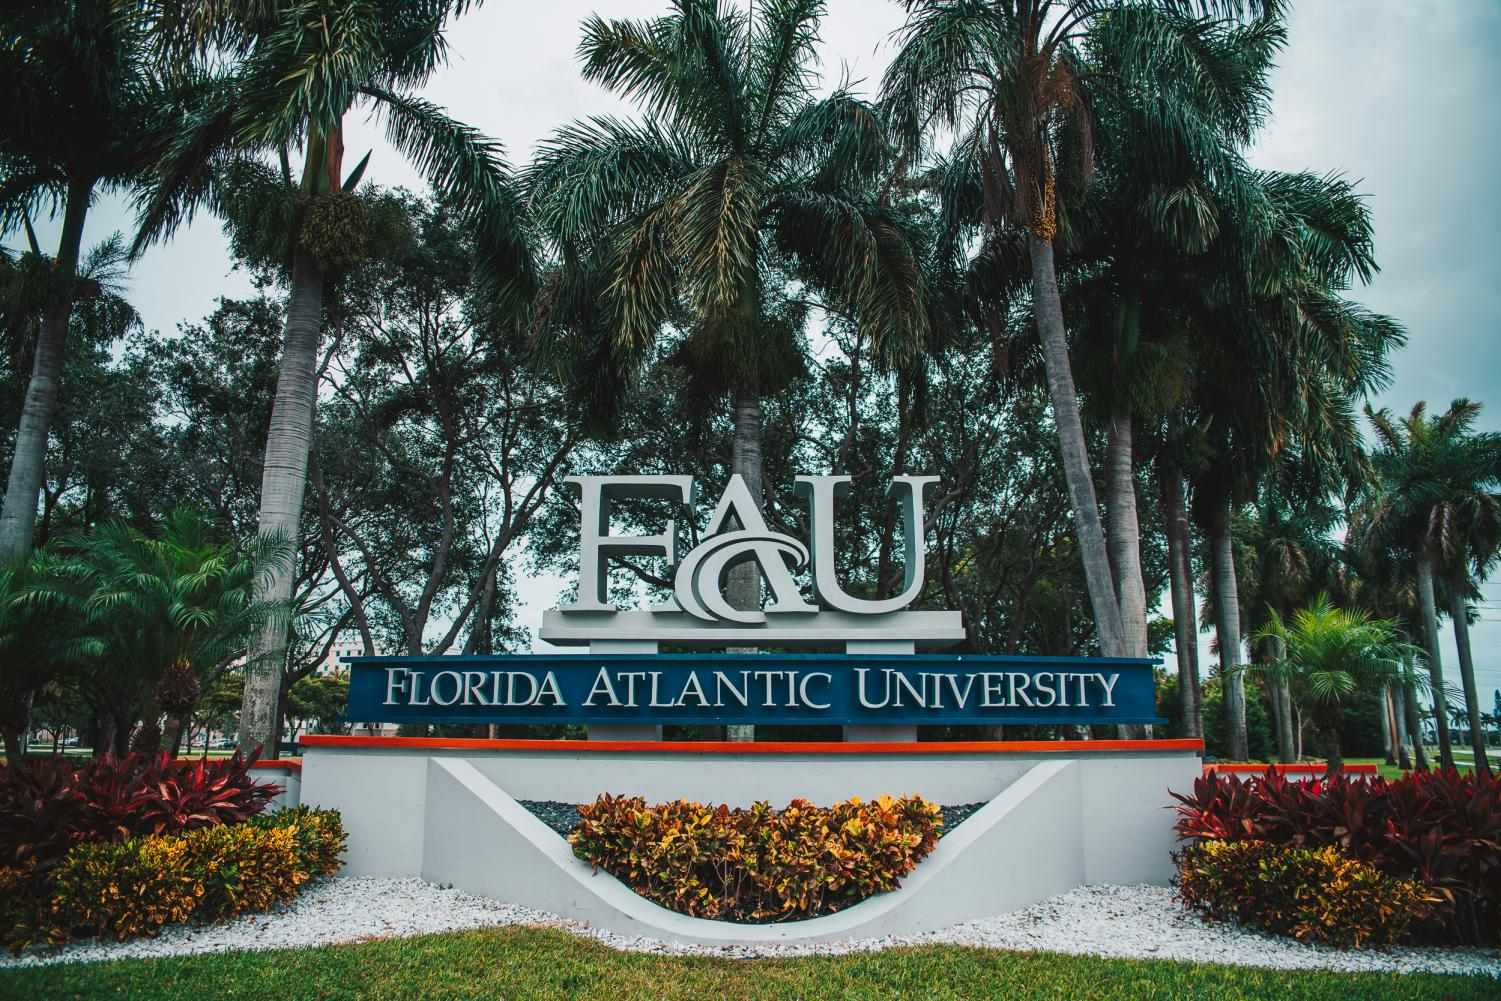 Fau 2022 Calendar.Fau Makes Revisions To The Spring Schedule Spring Break Canceled And Semester To End A Week Early University Press